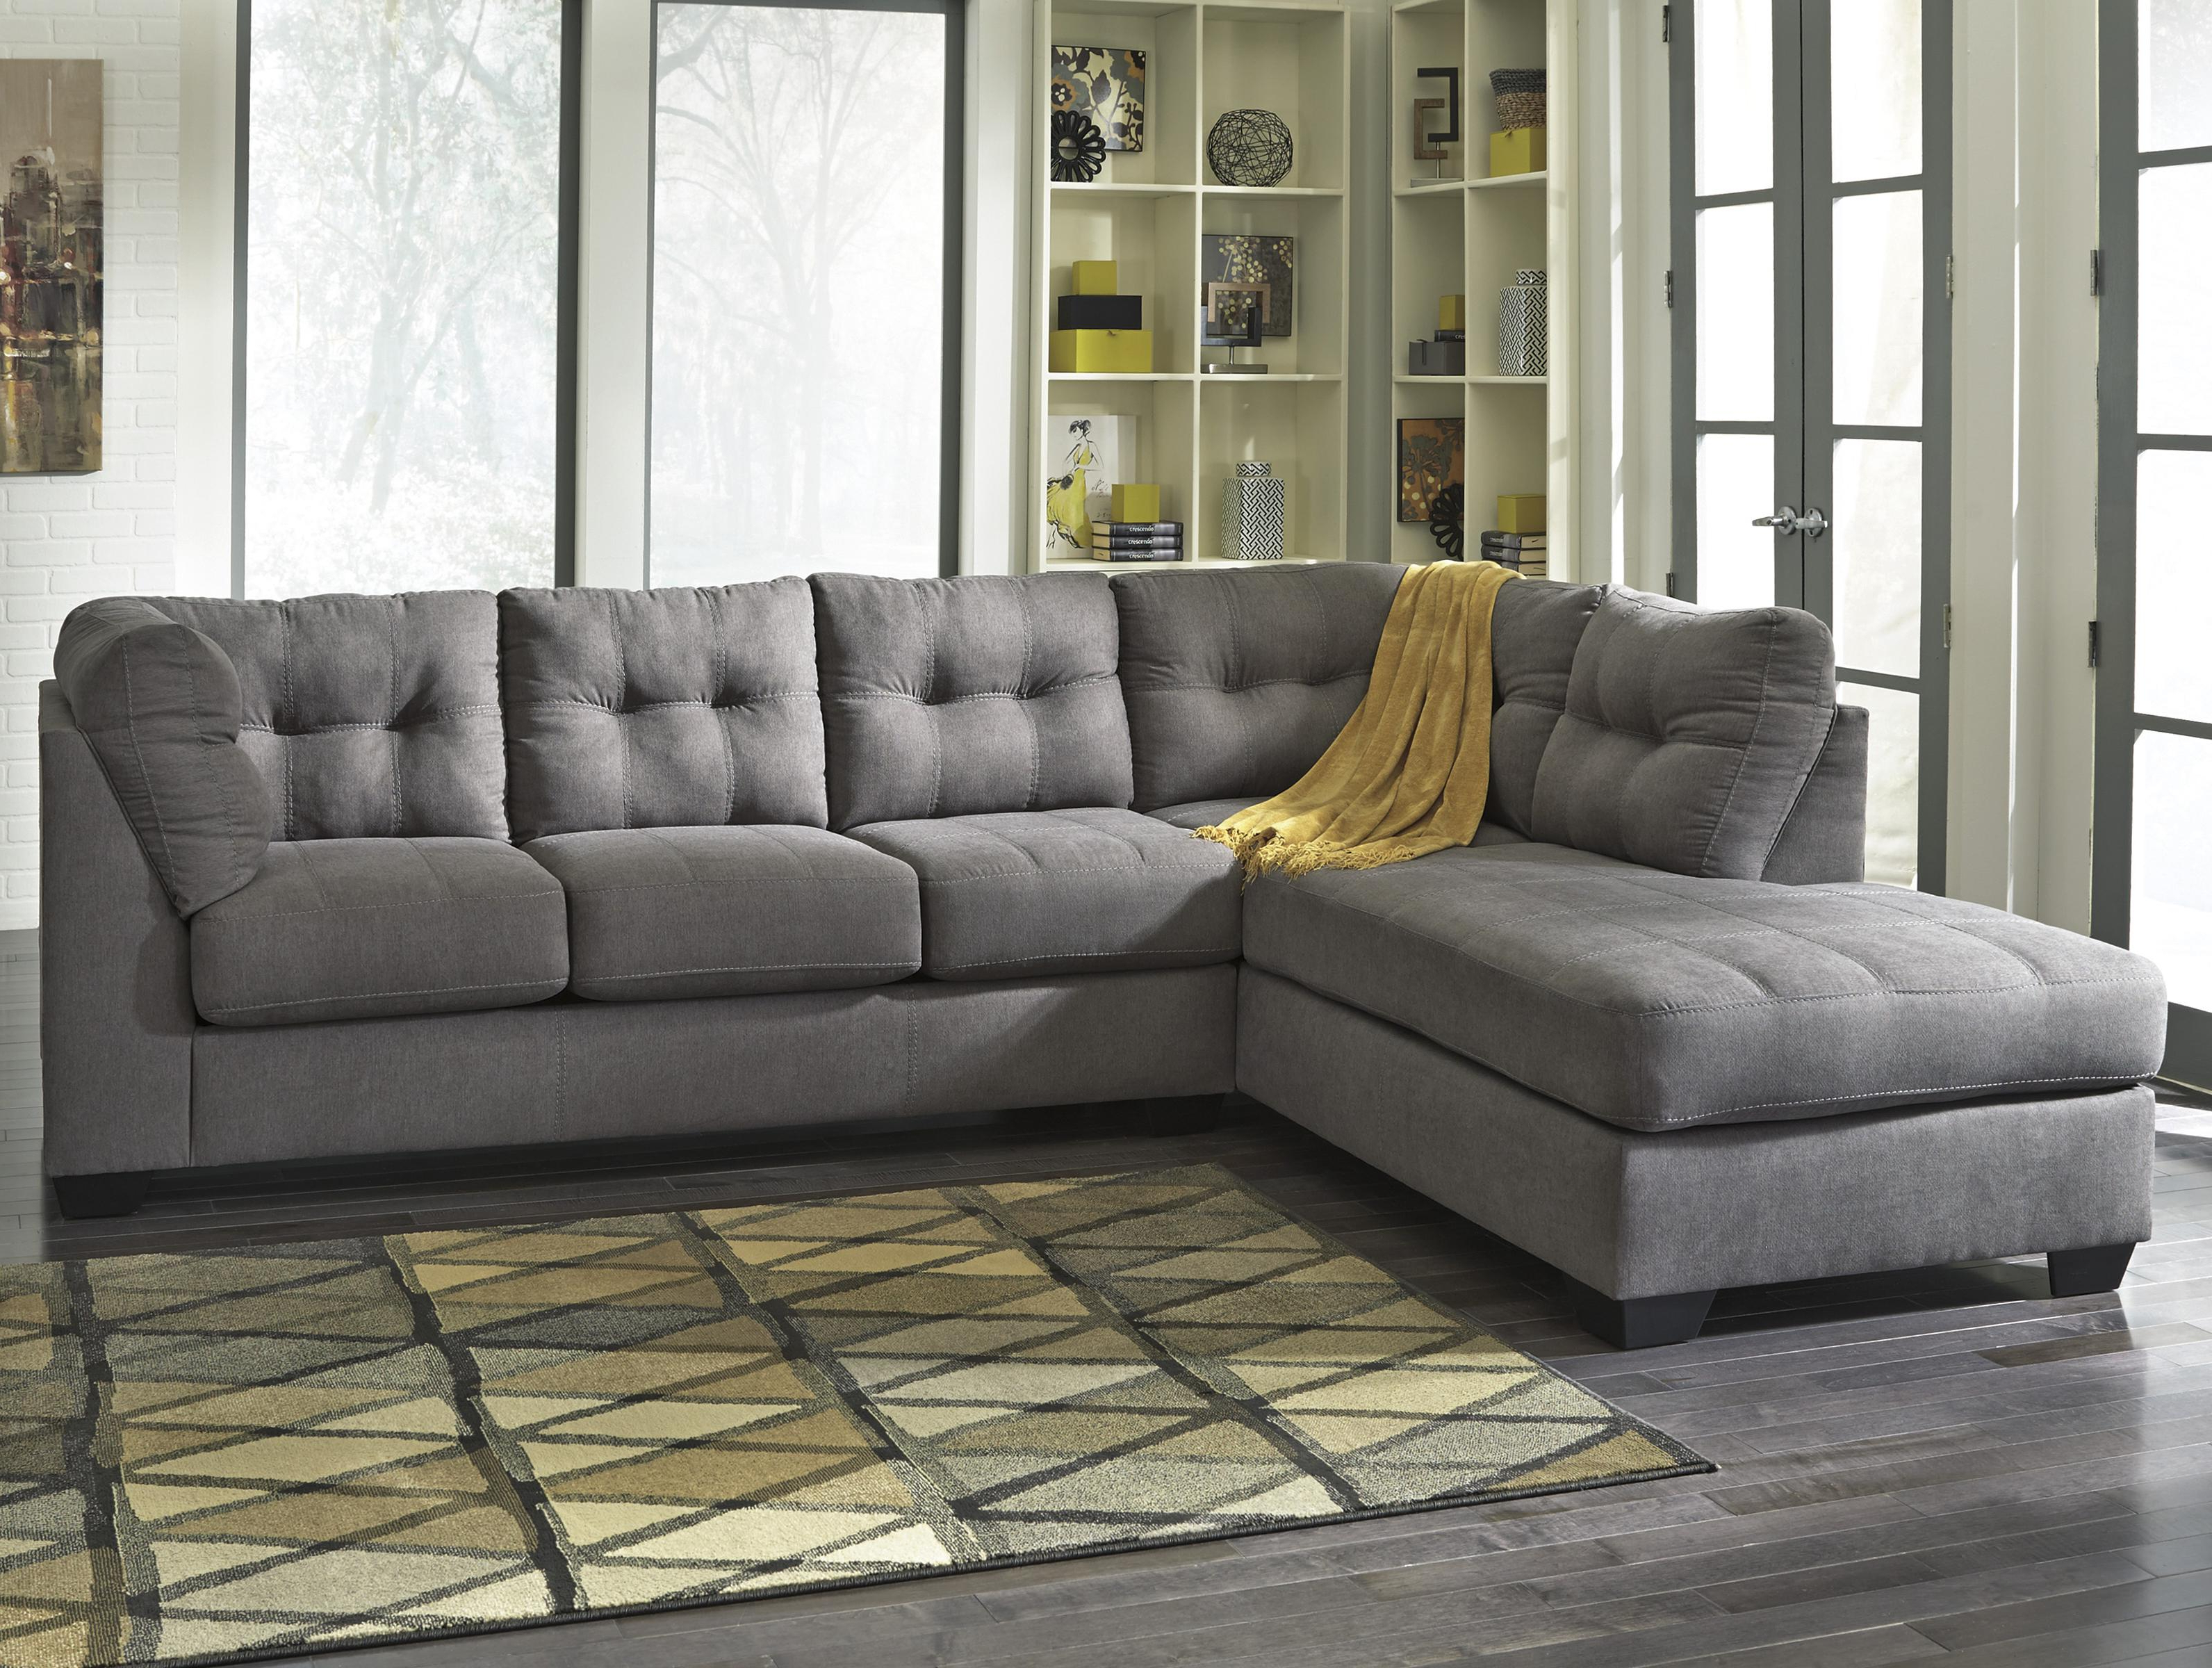 Josephine 2 Piece Sectionals With Laf Sofa Within Famous Sofas: Nice Looking Patola Park Sectional Design For Lovely Family (Gallery 8 of 20)